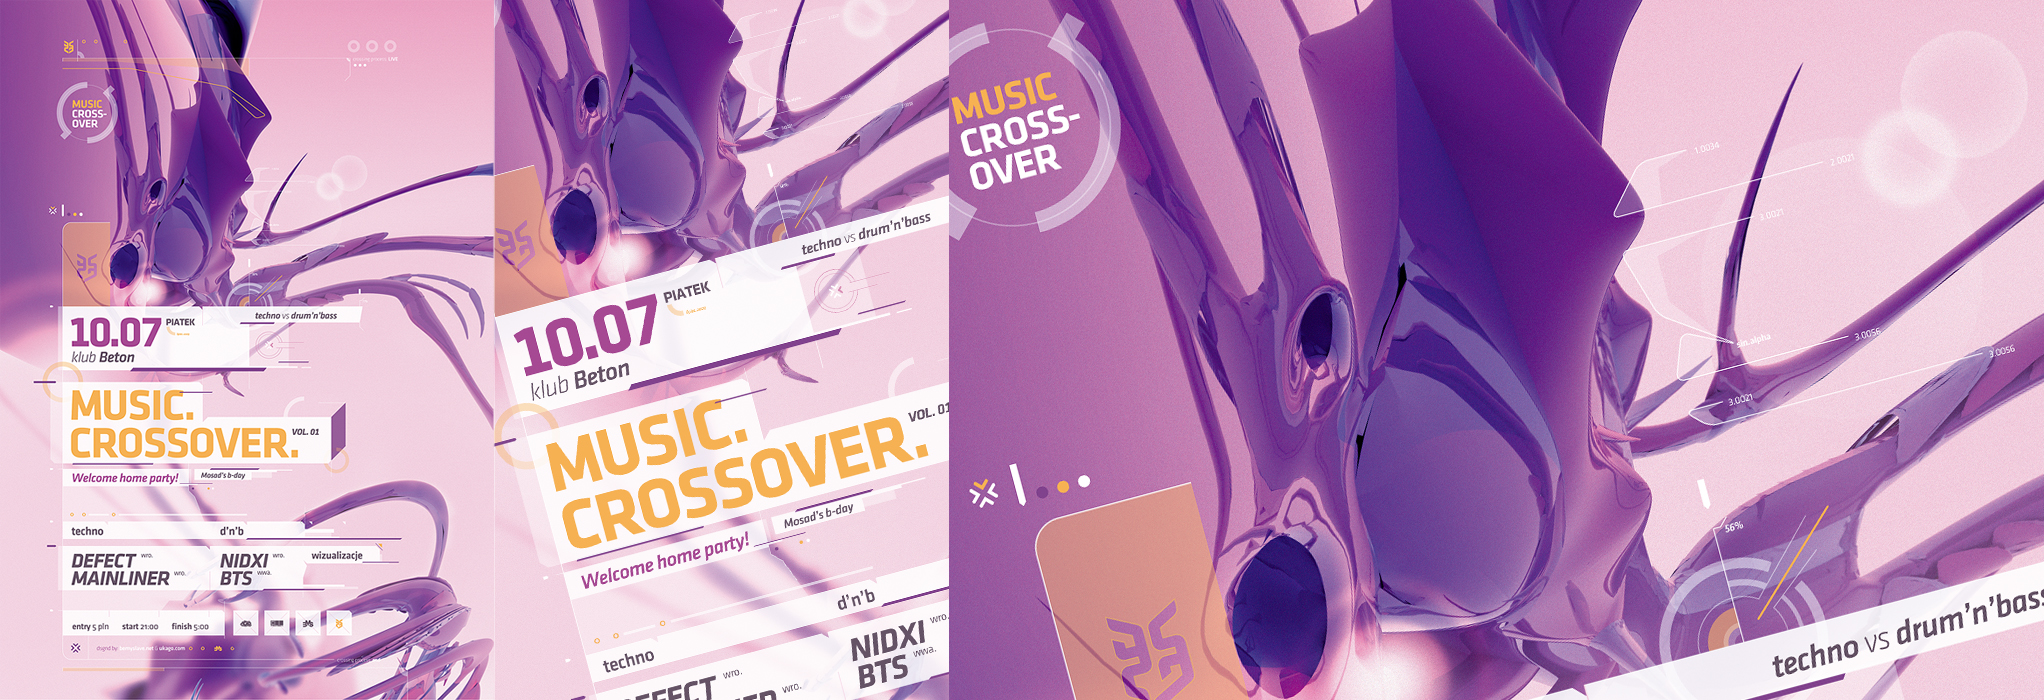 Music Crossover 01 by Defect303